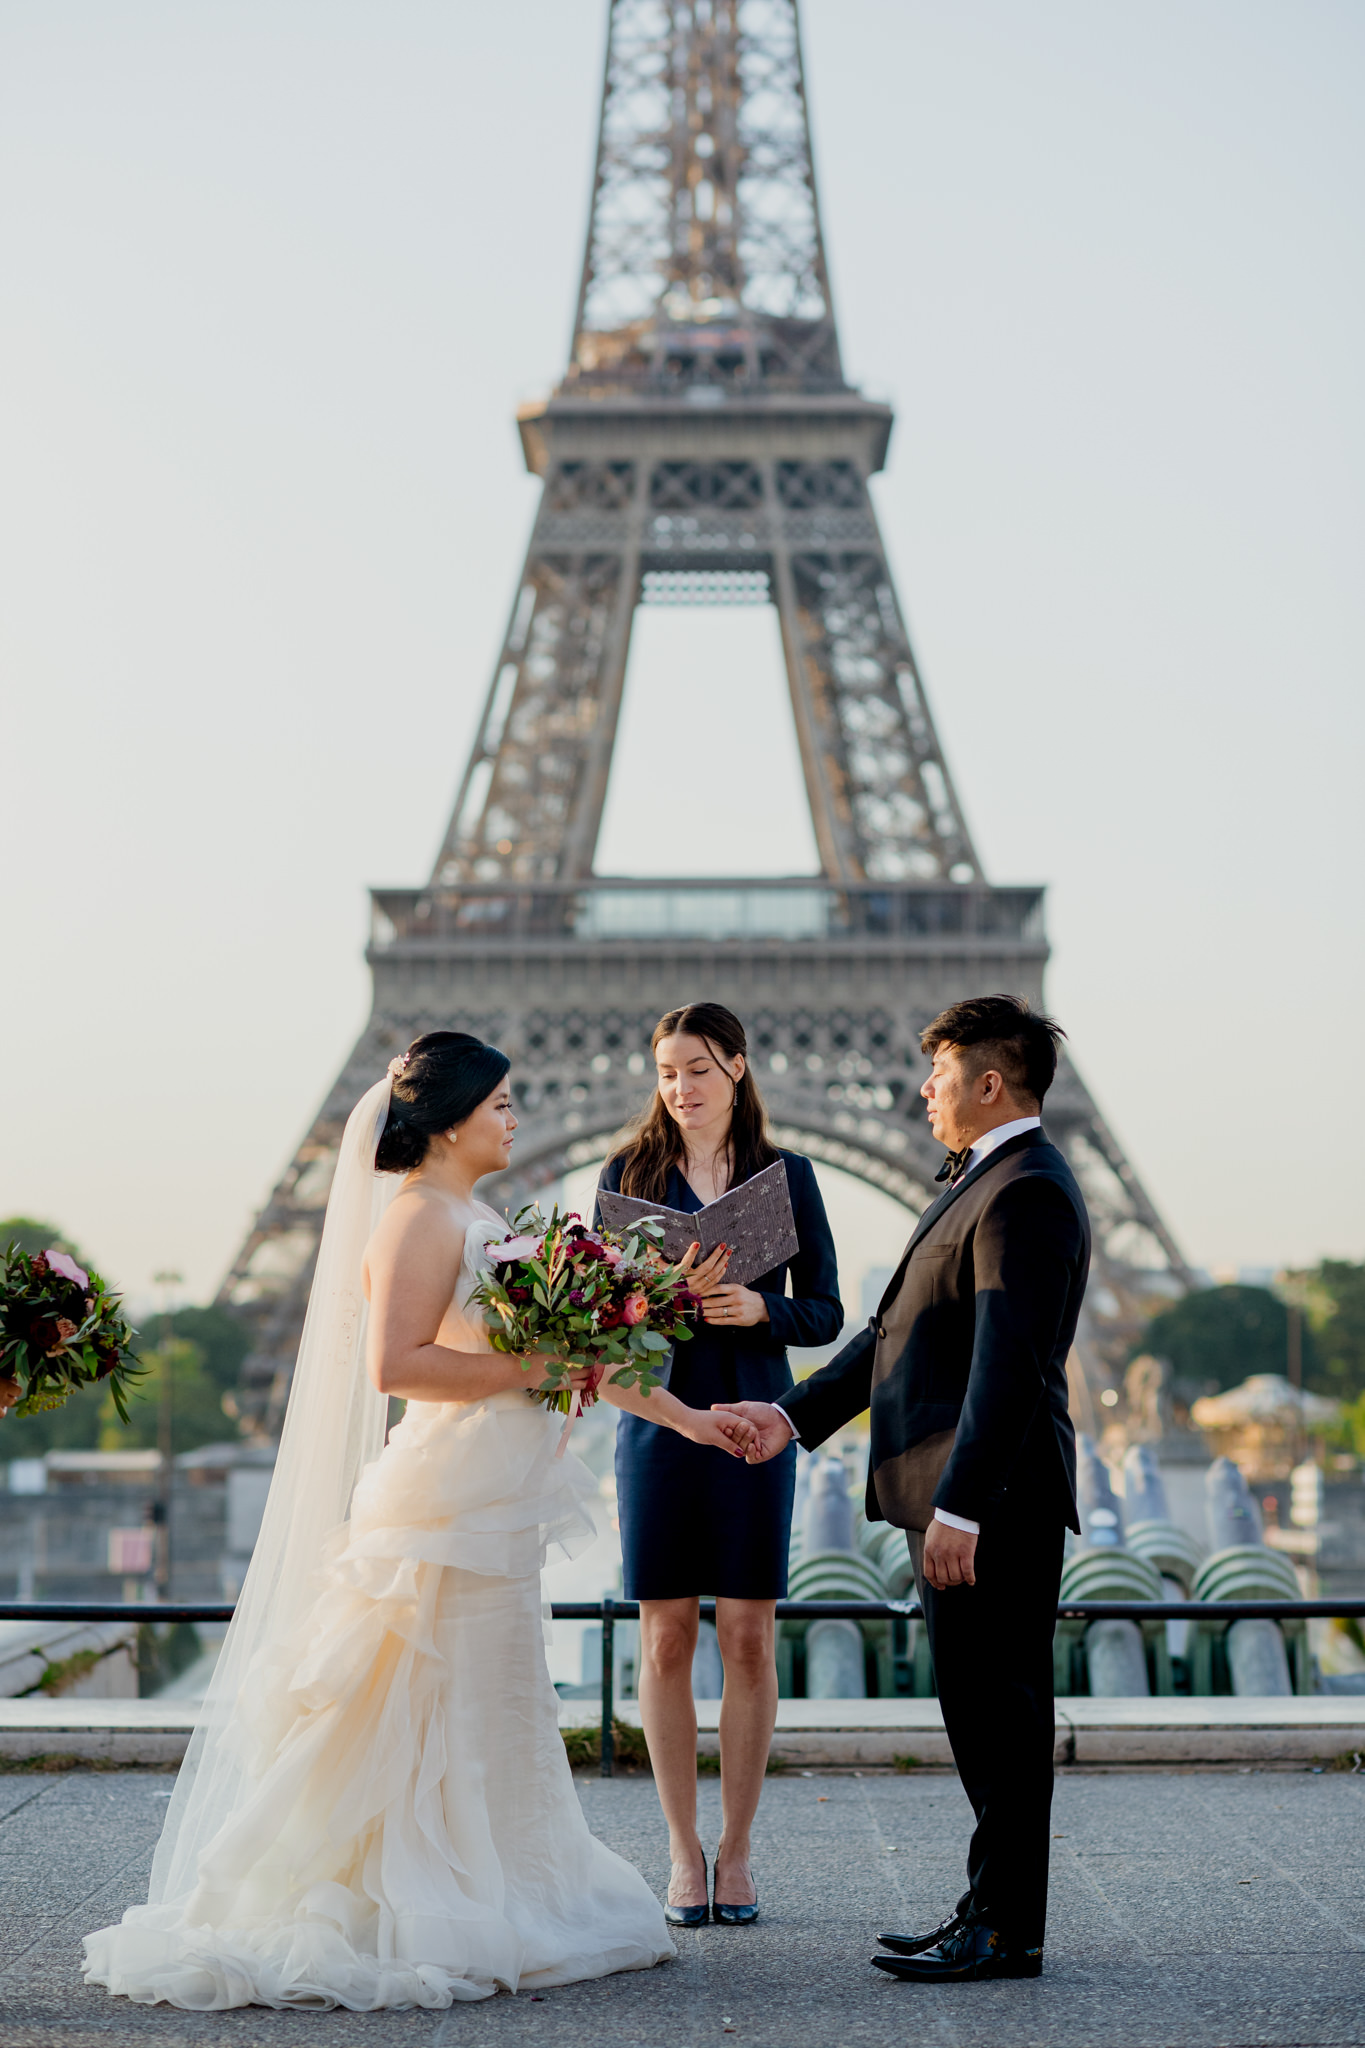 A bride and groom hold hands in front of the Eiffel Tower as their celebrant reads to them.